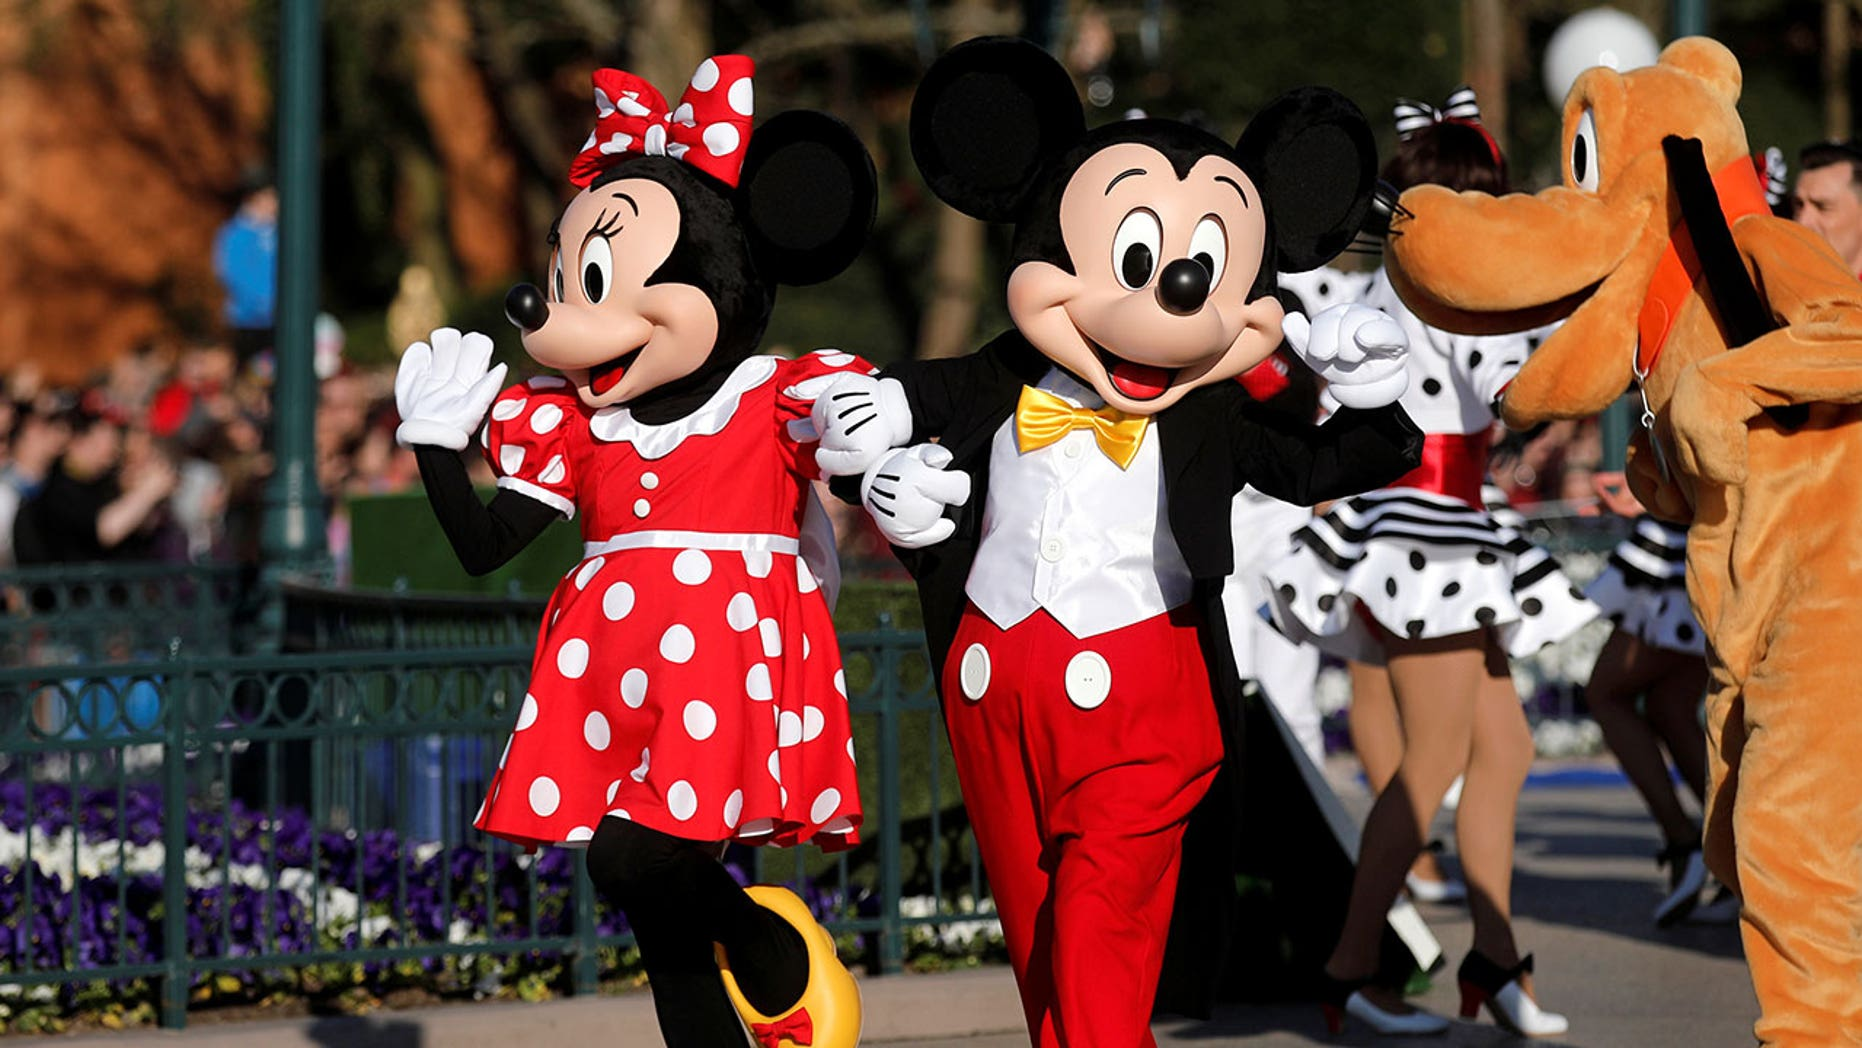 Disneyland changing how mickey minnie will interact with park mickey minnie and even donald duck have been acting very different lately m4hsunfo